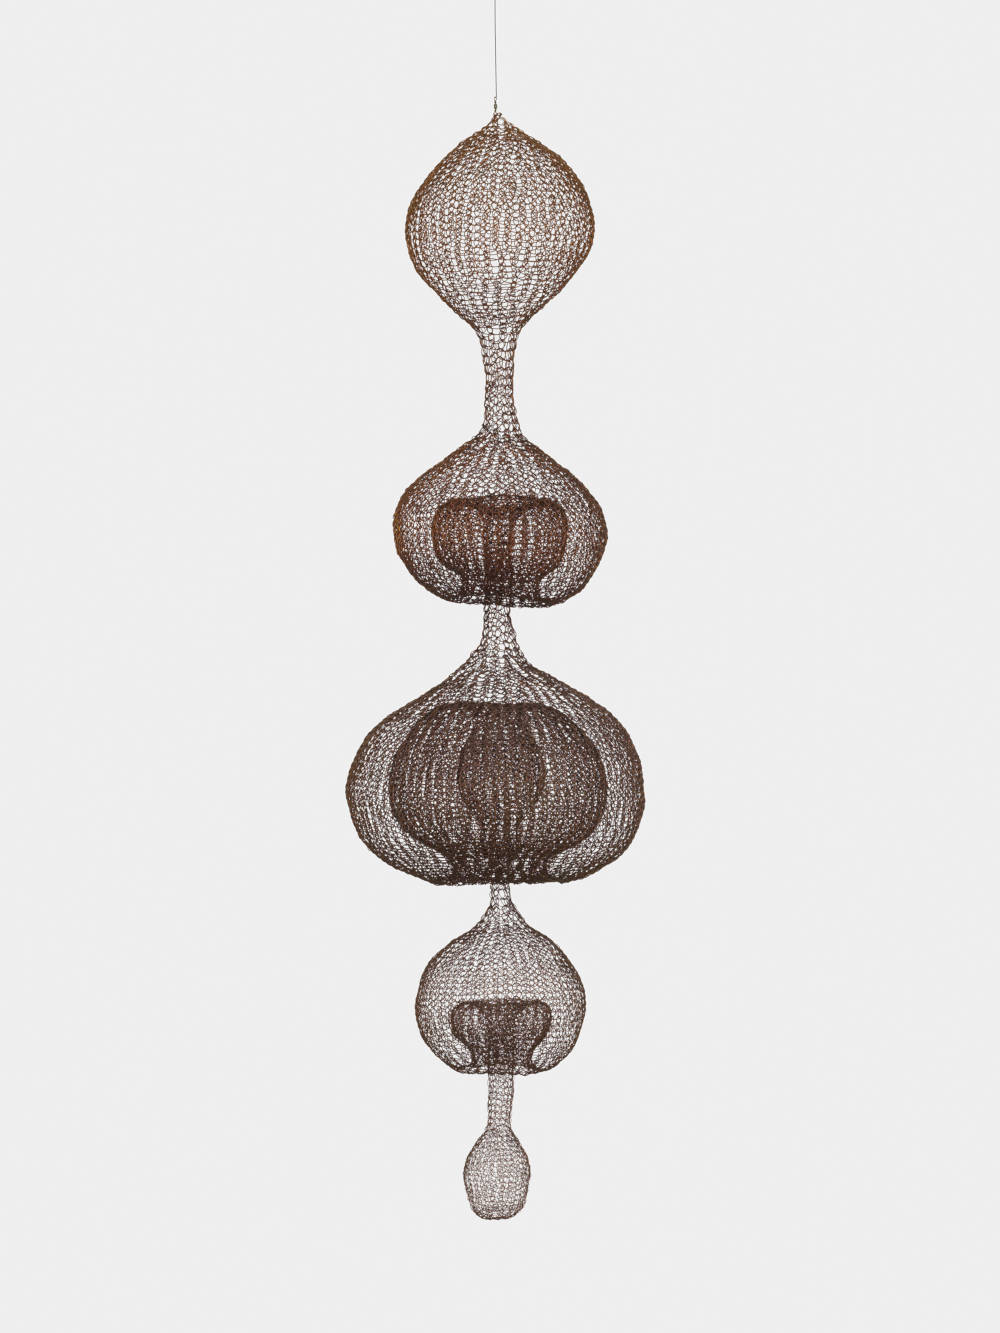 Untitled (S.142, Hanging Five-Lobed, Multi-Layer Continuous Form within a Form)